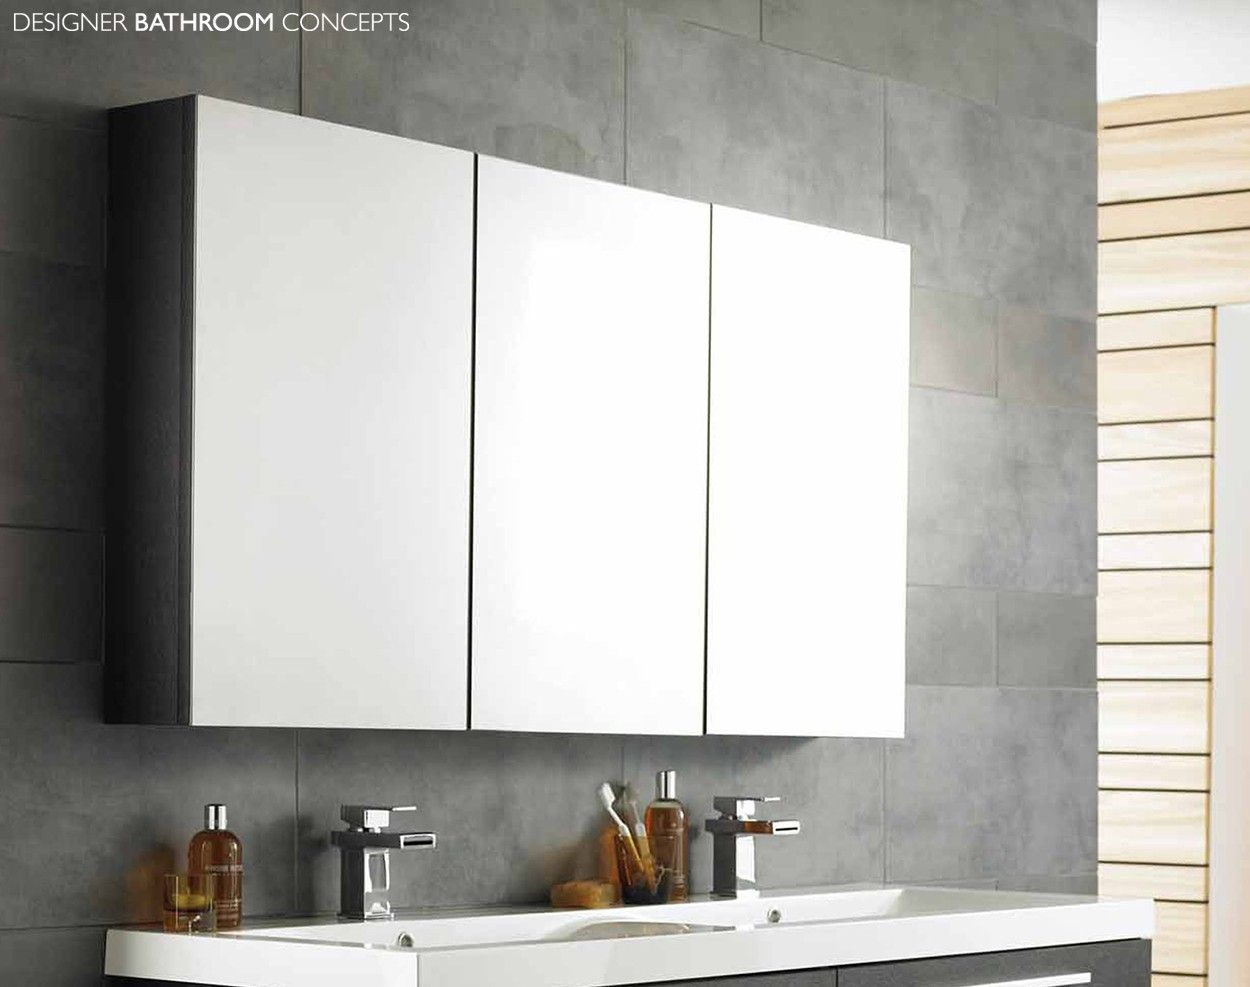 wall cabinets with mirror for bathroom | 1 Art | Pinterest ...